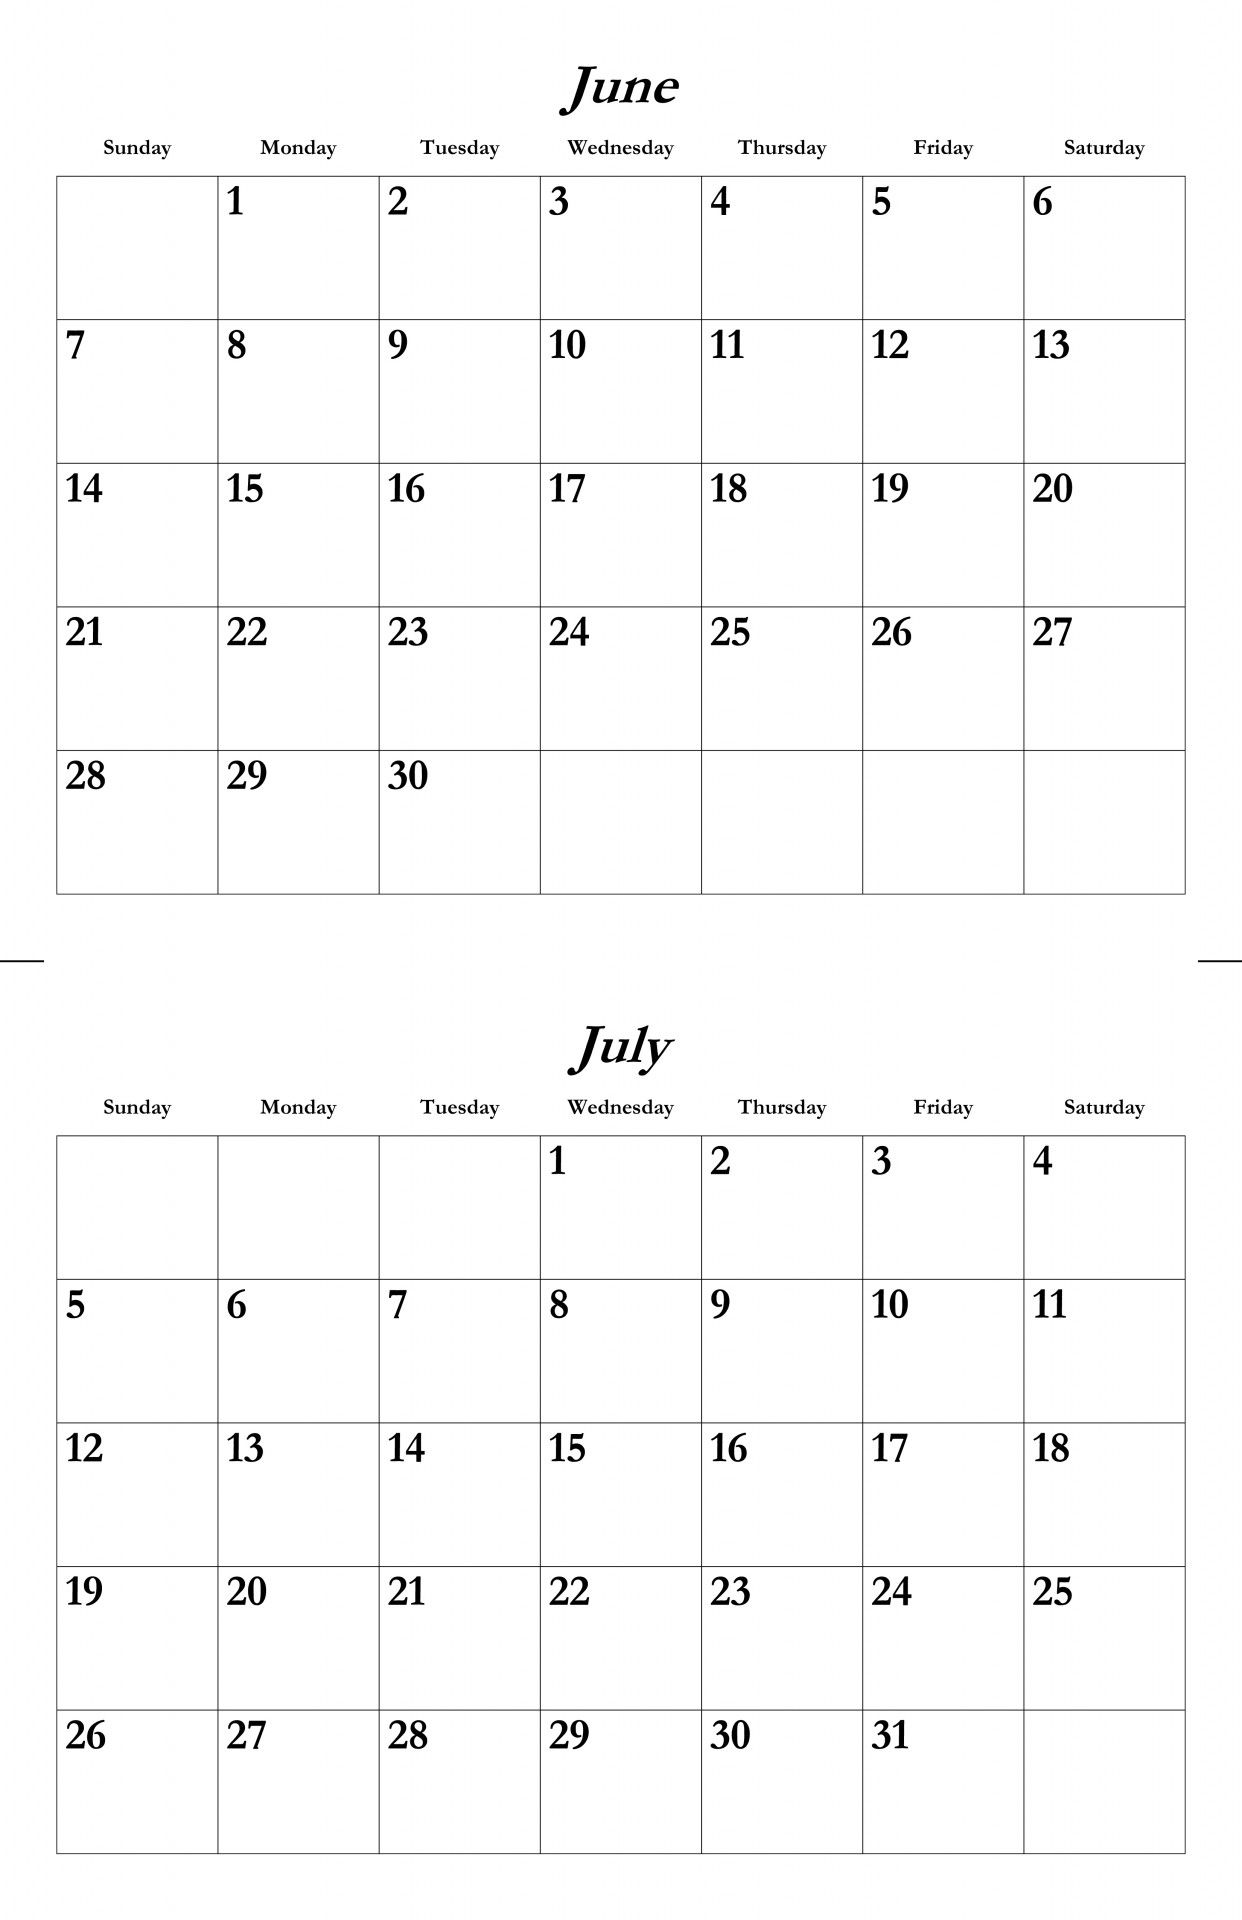 June And July Calendar  Google Search  Etc